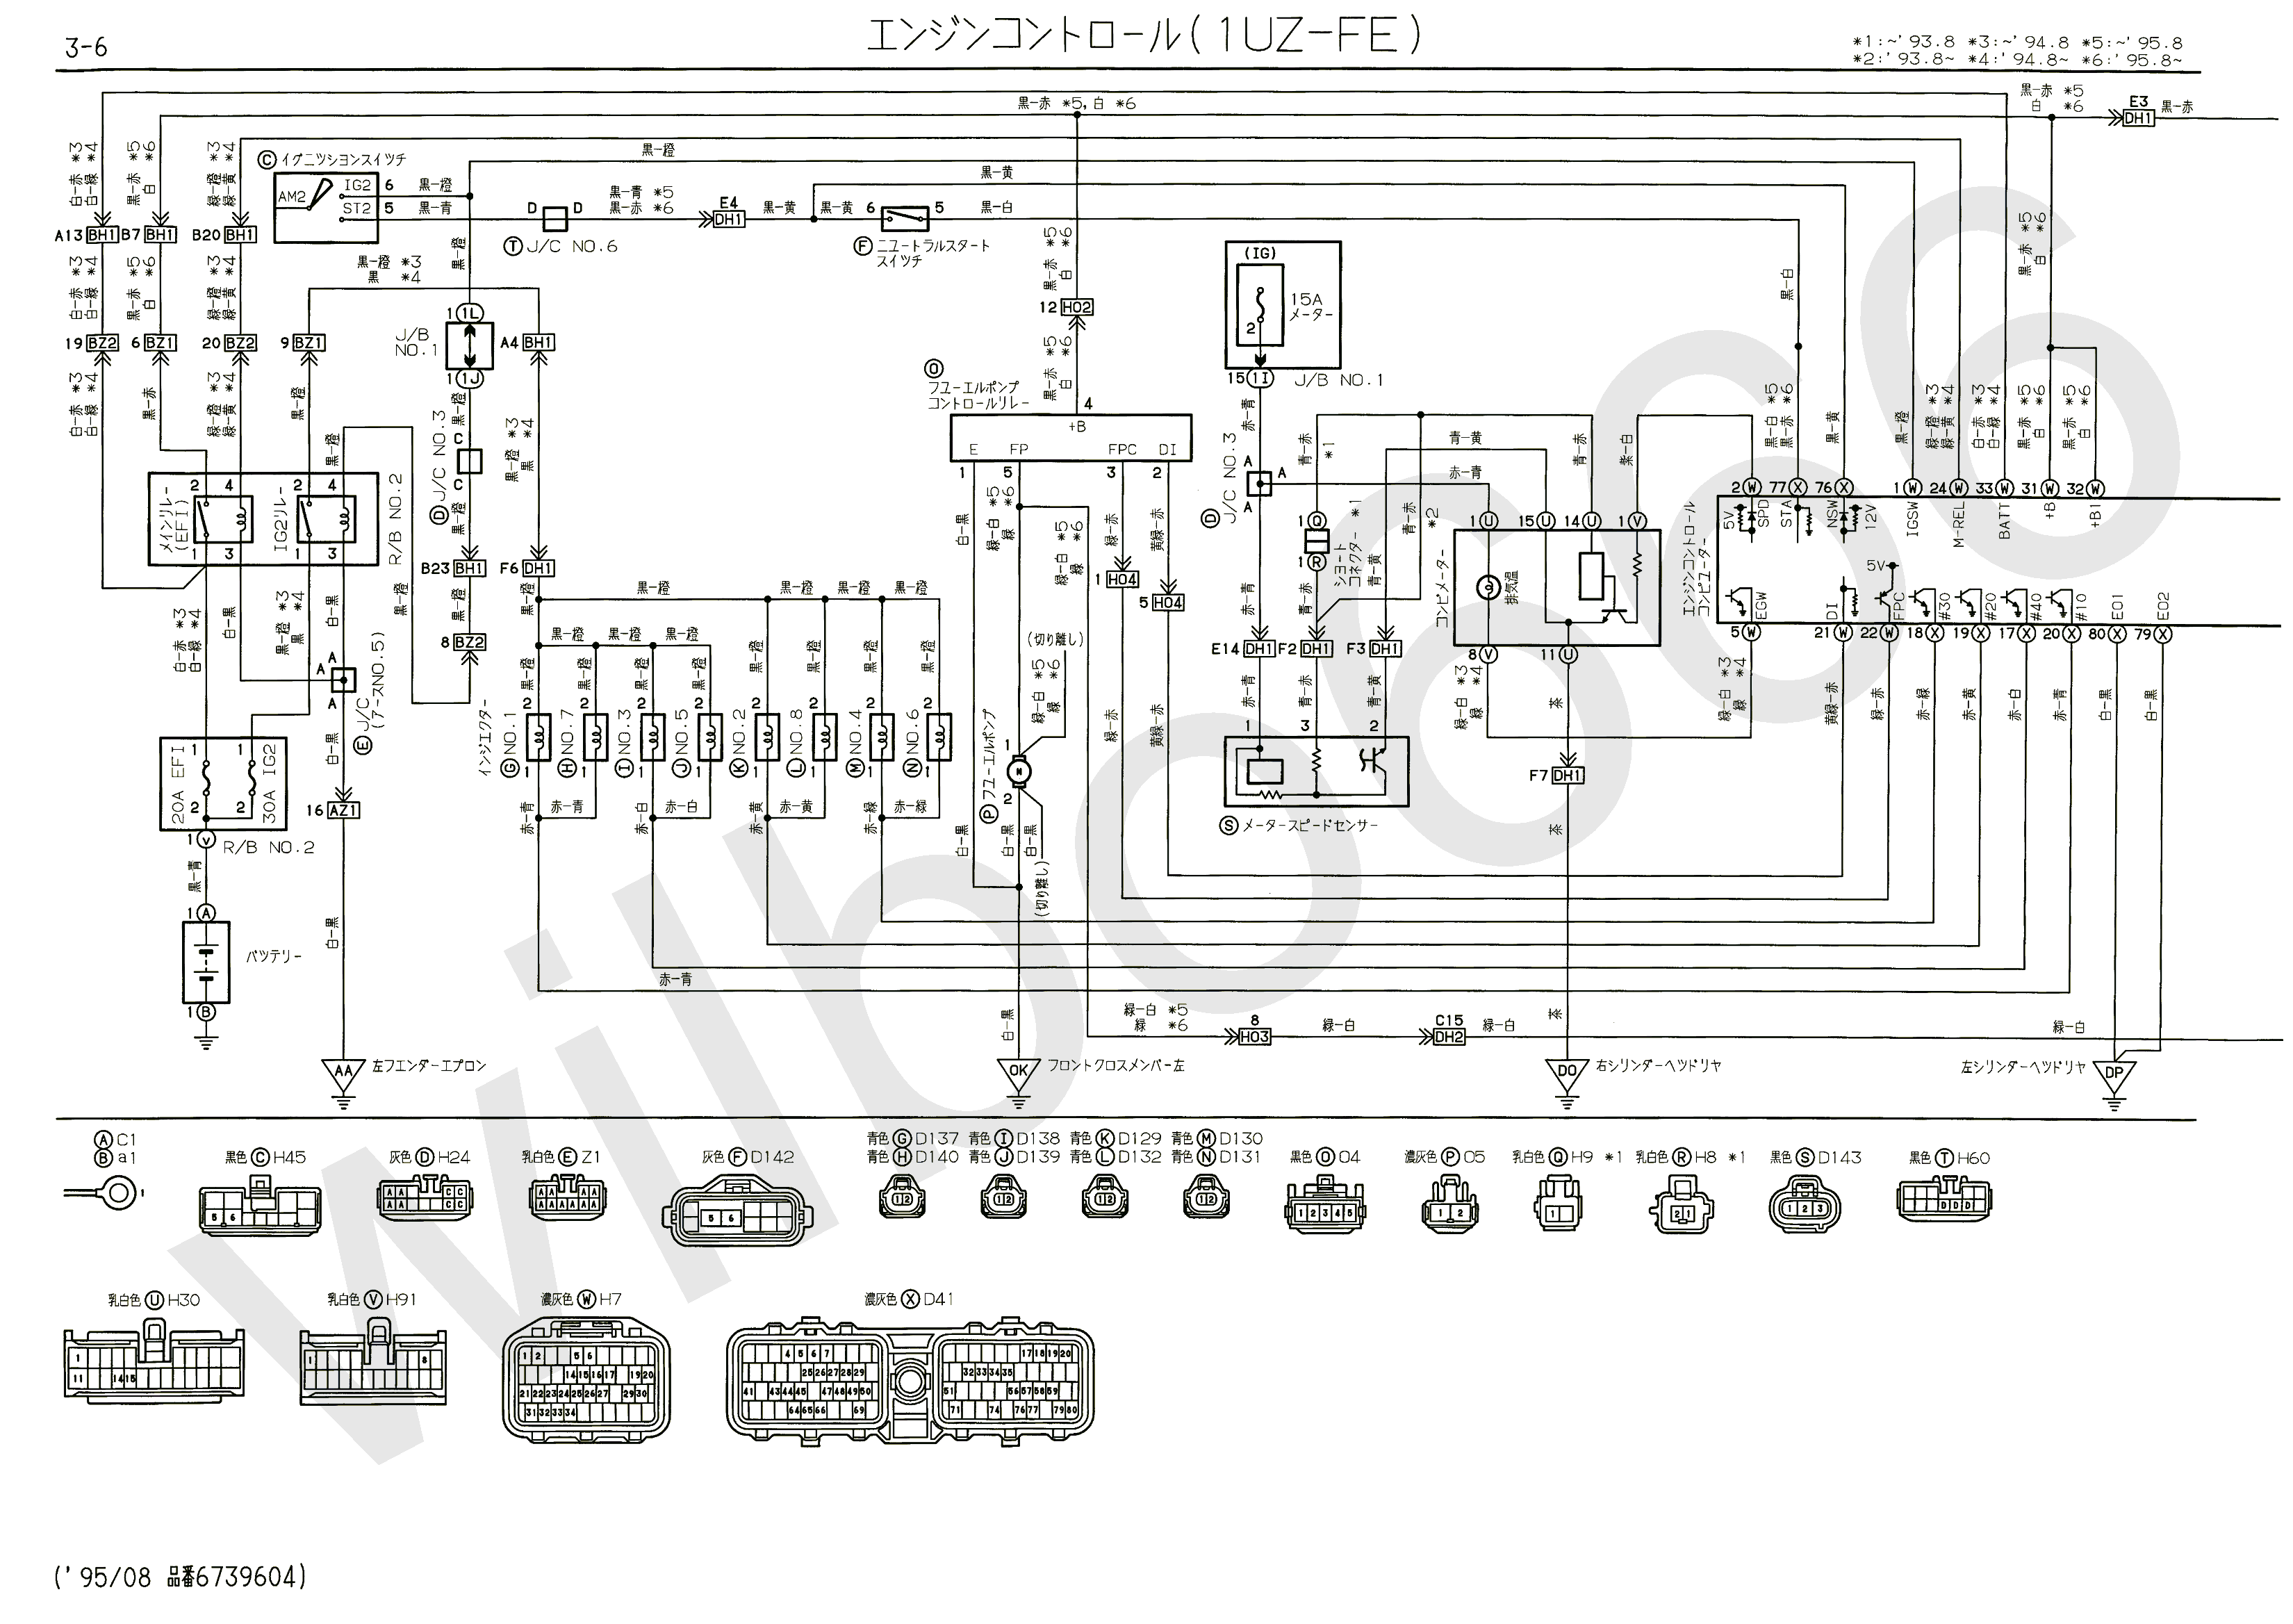 JZS14%23%2C UZS14%23 Electrical Wiring Diagram 6739604 3 6?resize=665%2C471 100 [ urgently needed wiring diagrams clublexus lexus forum shredex brute 400 wiring diagram at mifinder.co